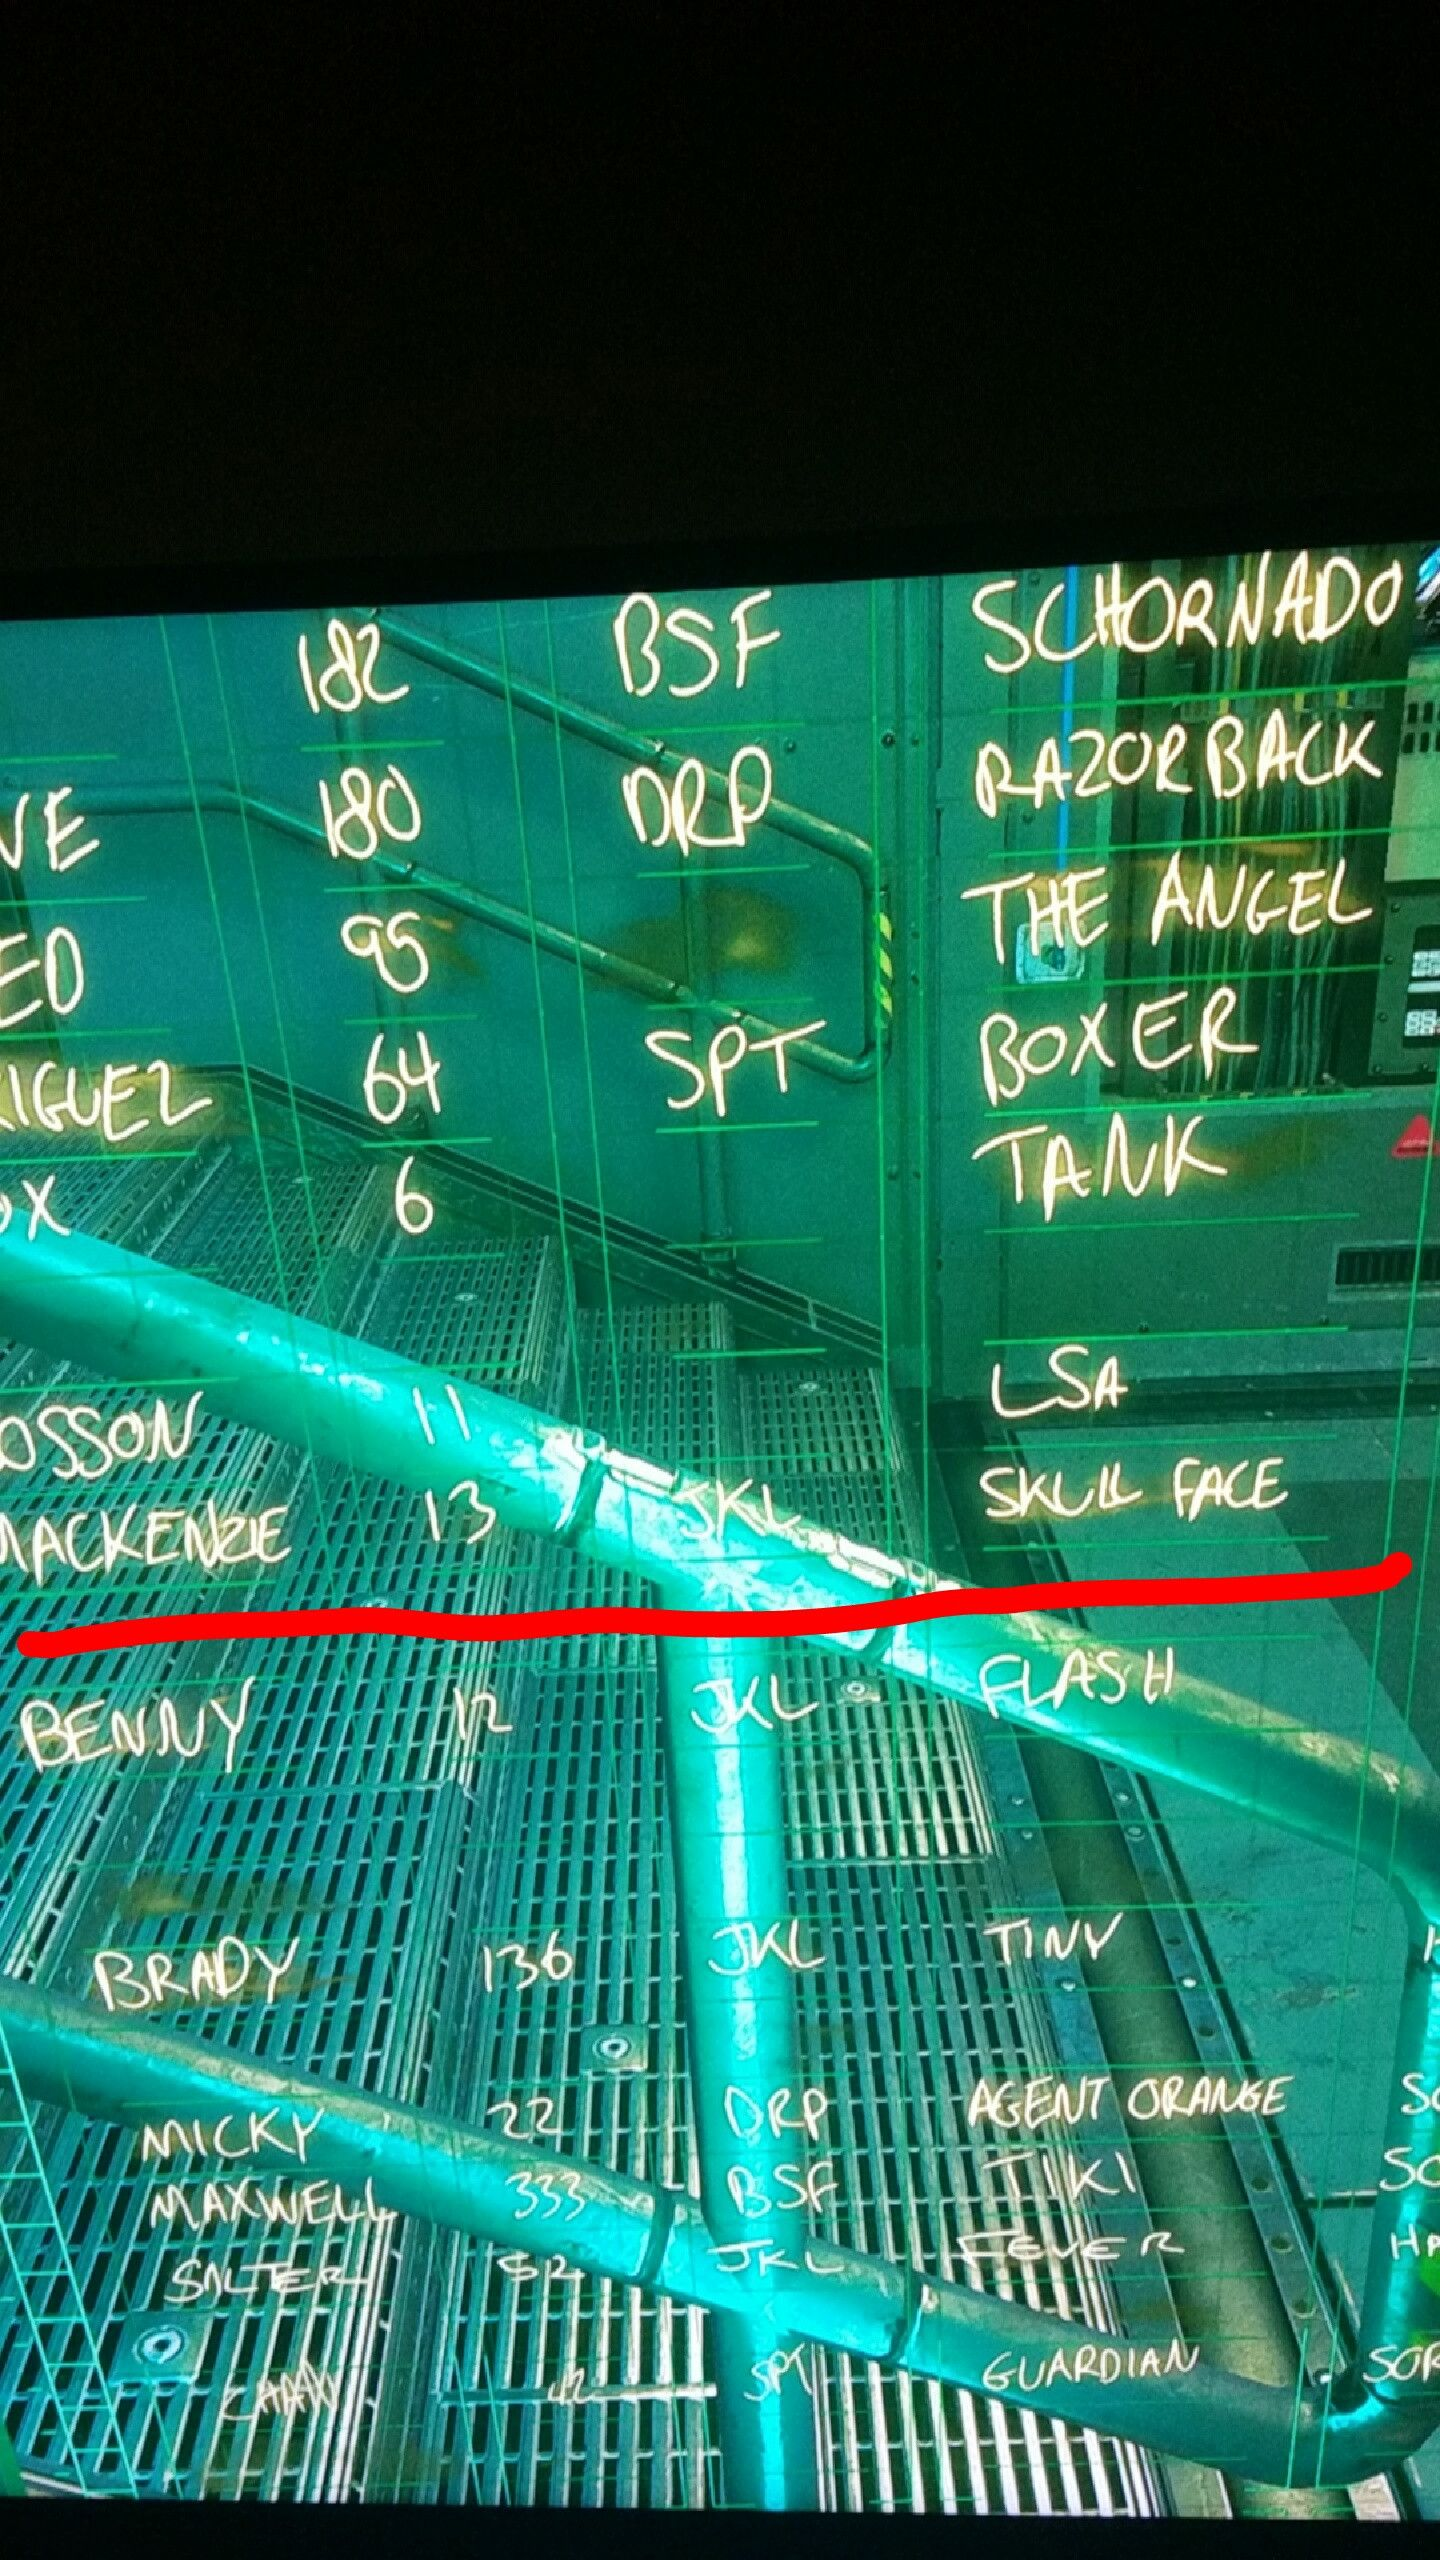 Found this little MGS reference in COD infinite warfare